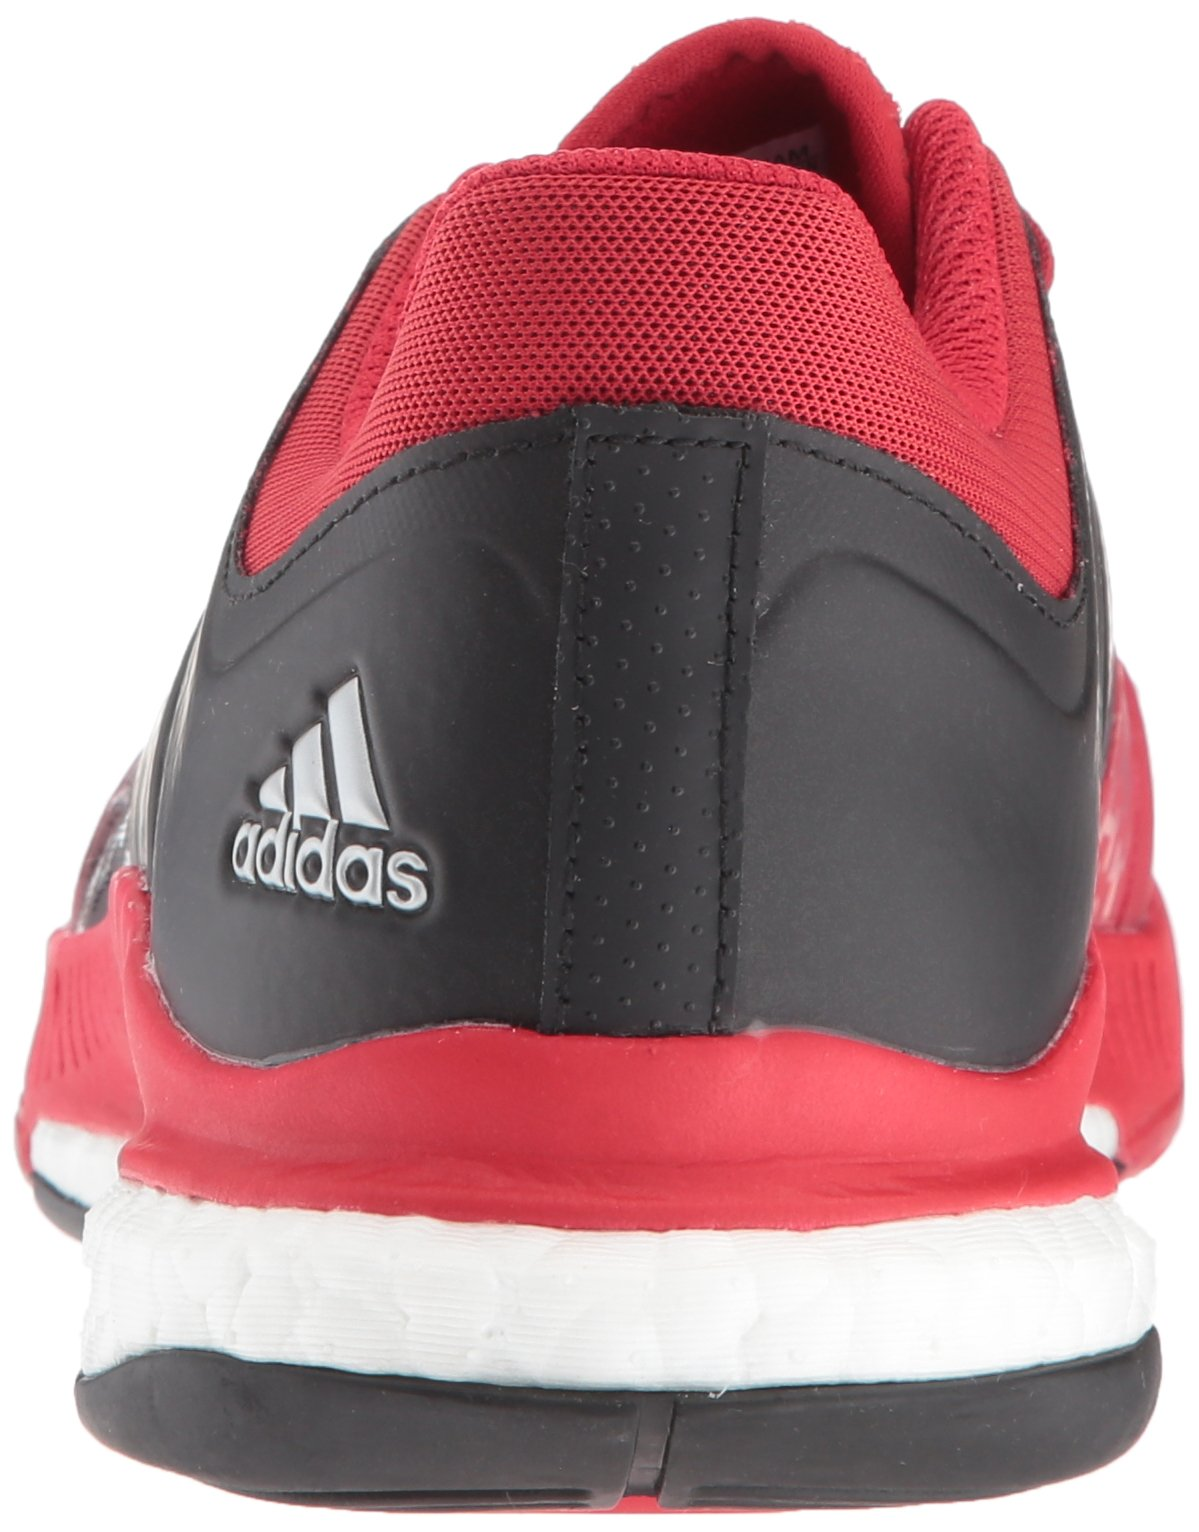 Adidas Women's Shoes Crazyflight X Volleyball Shoe Black/Metallic Silver/Power Red,7.5 by adidas Originals (Image #2)